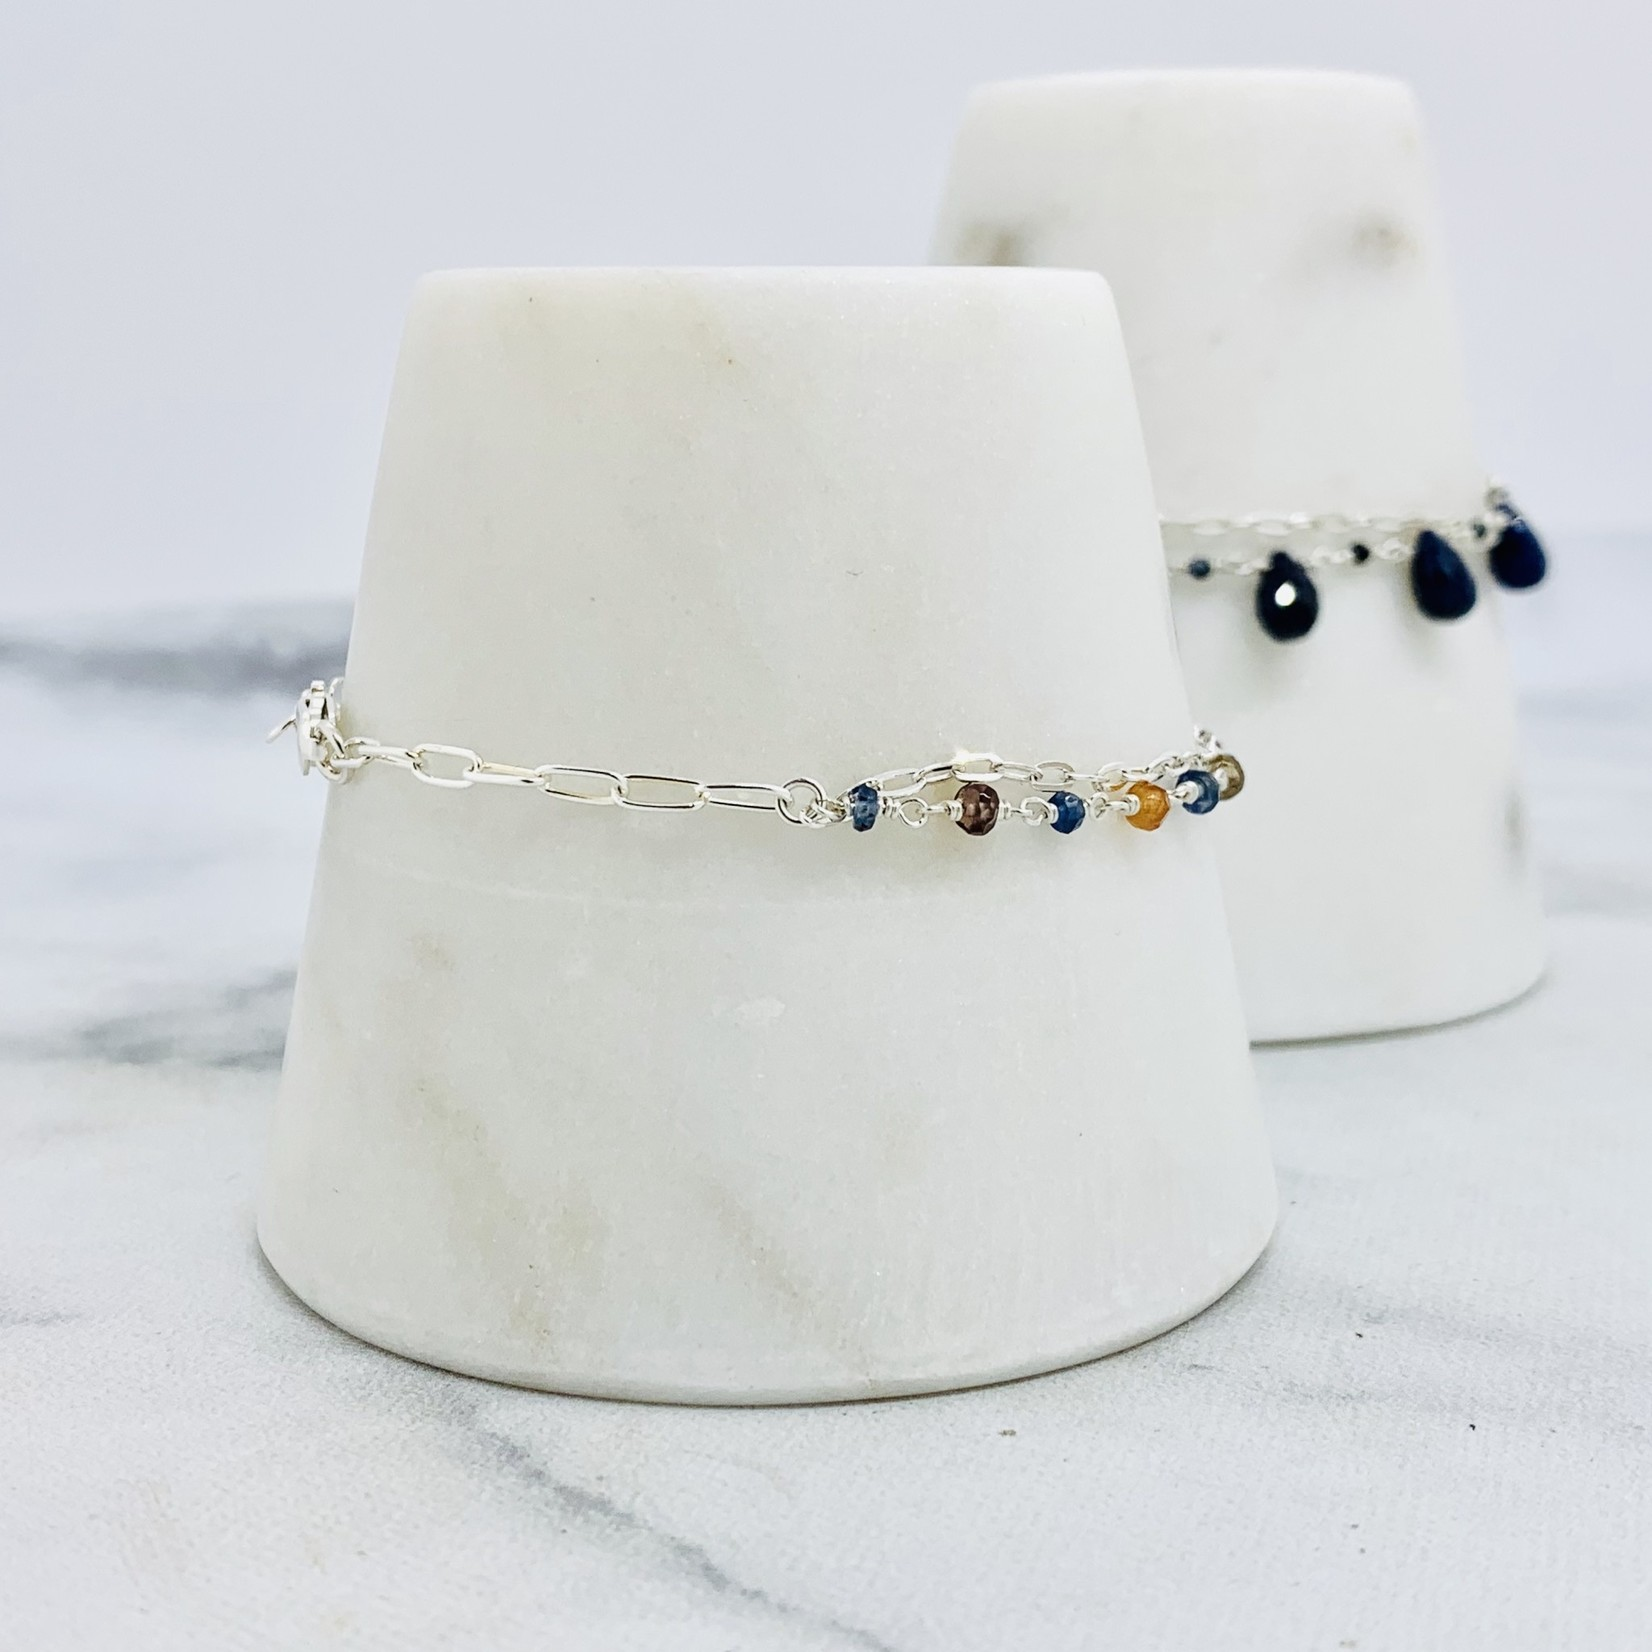 EVANKNOX Handmade Bracelet with connected multi-color sapphires, 1/2 double